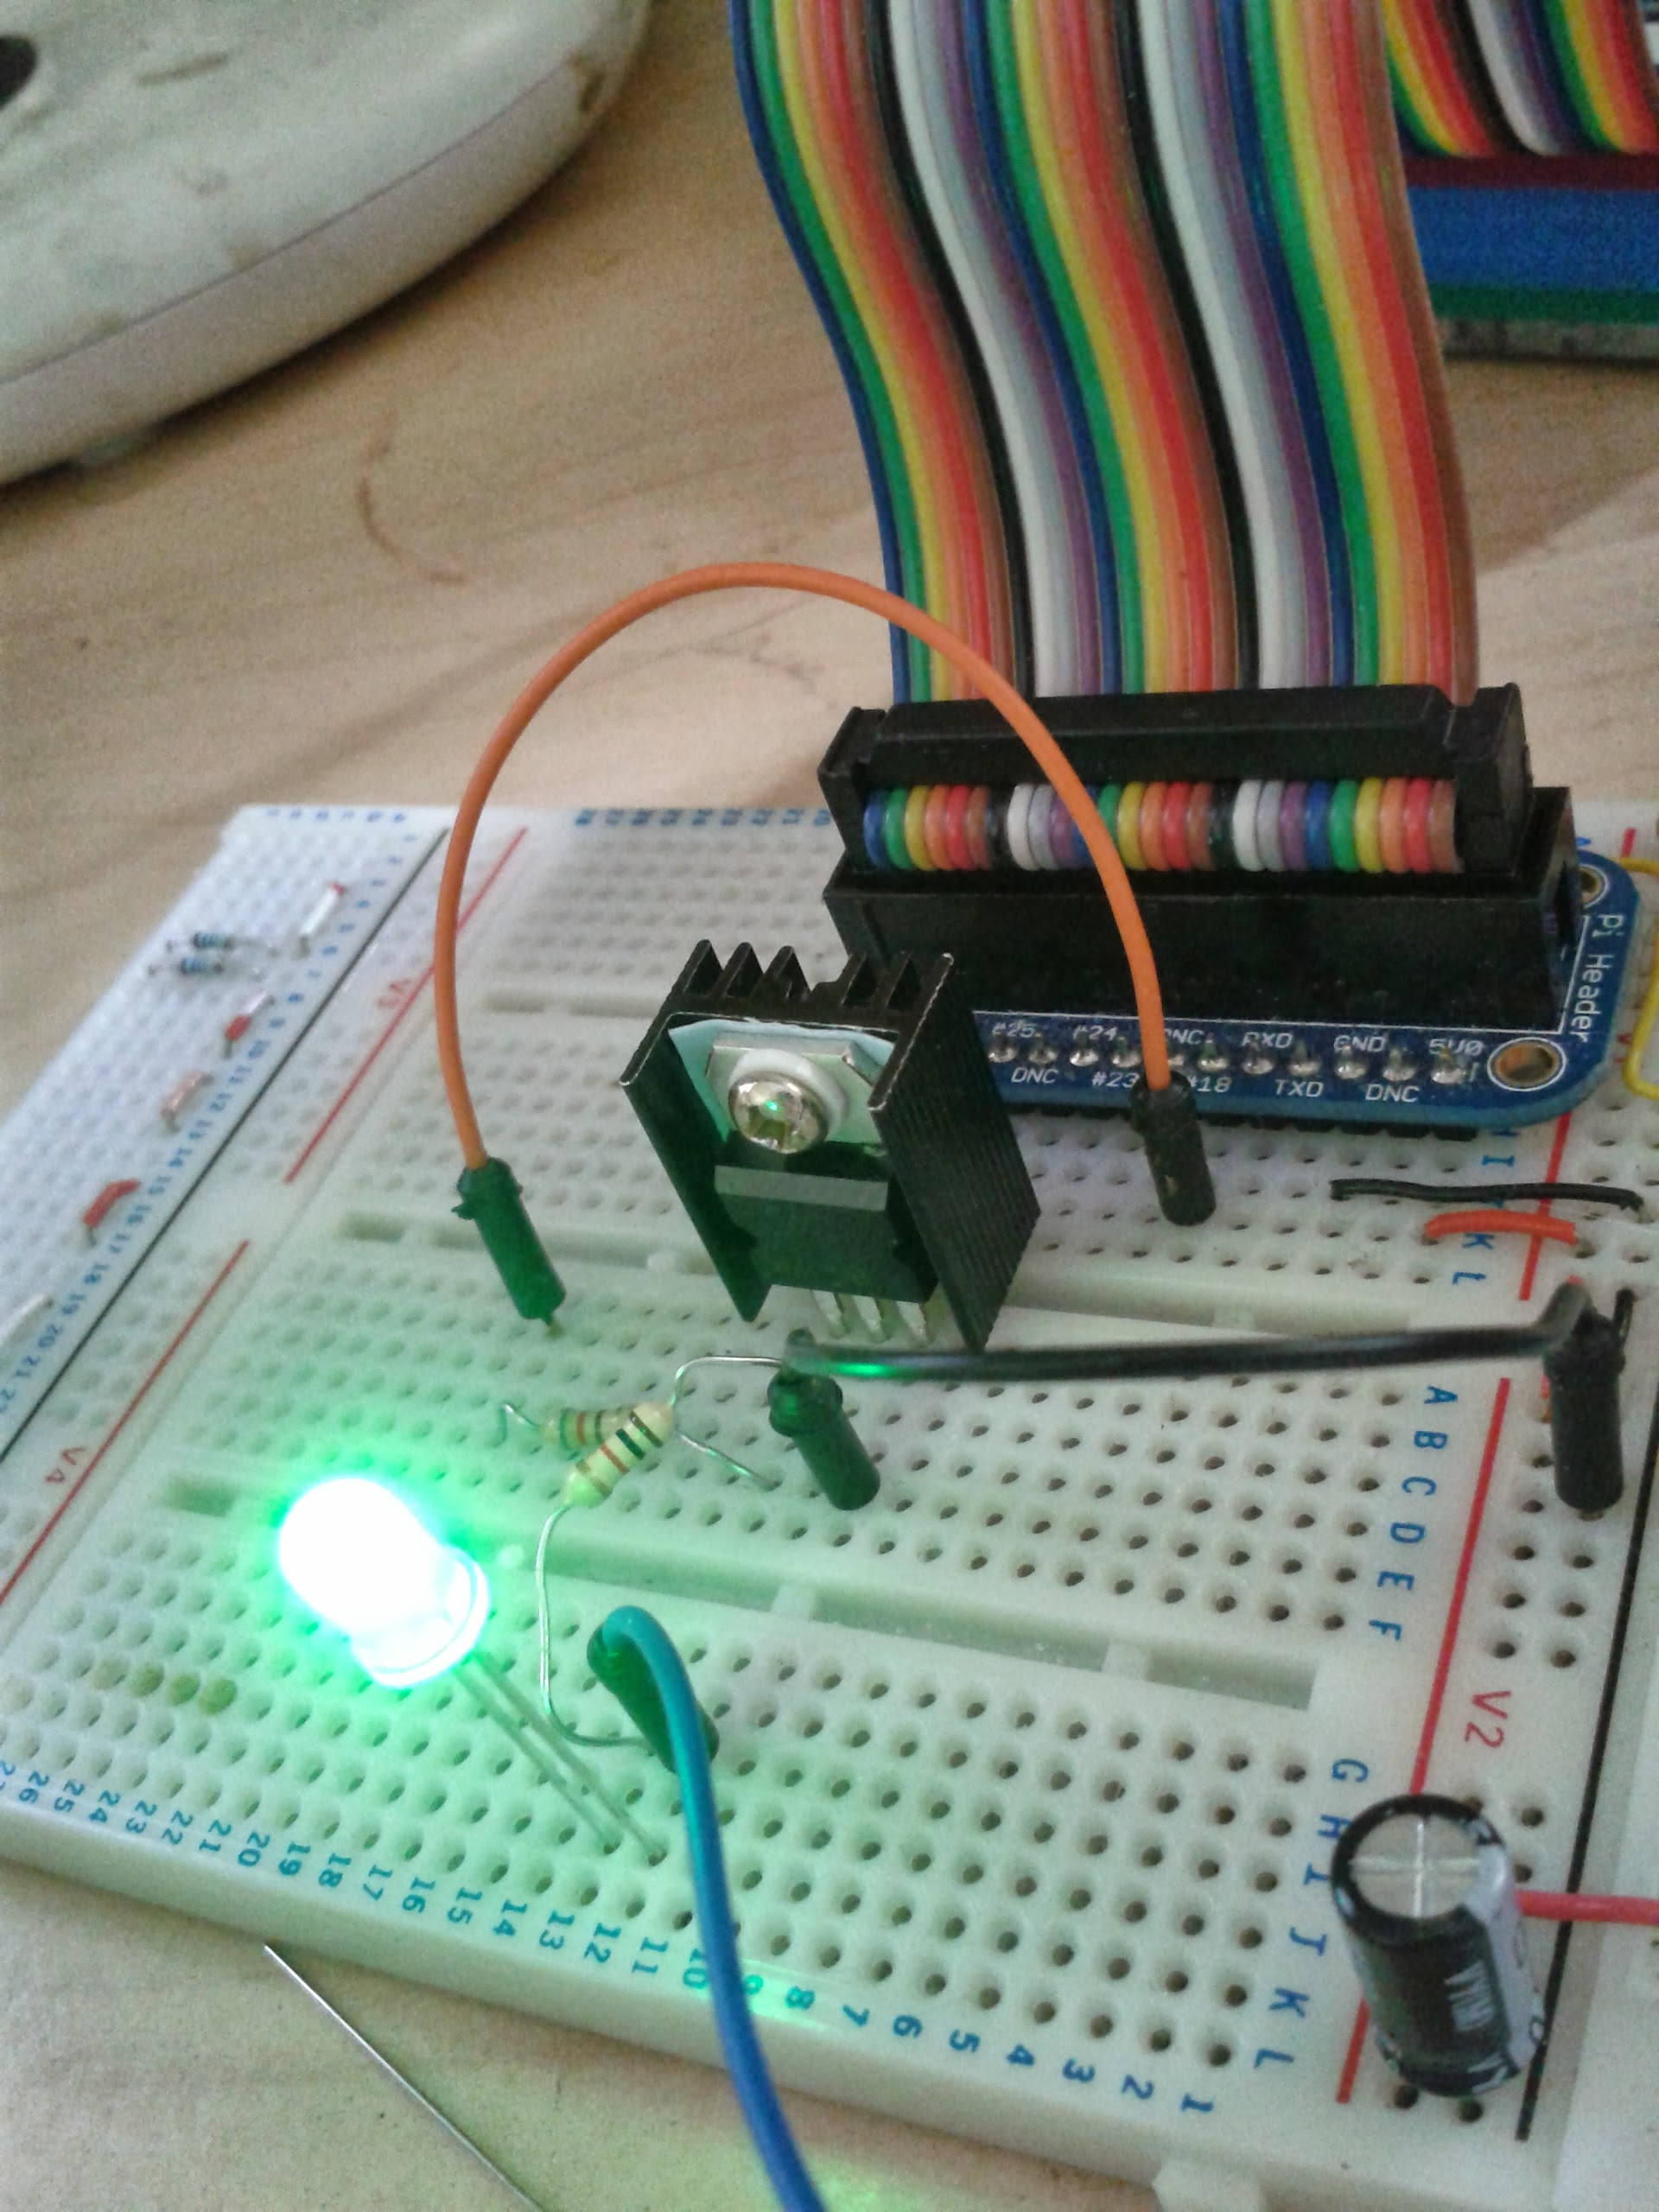 Raspberry Pi Running Node Red Wiring To Pwm Control A Light Wiringpi Set Mode Tip120 Driving An Led From The Pin Of